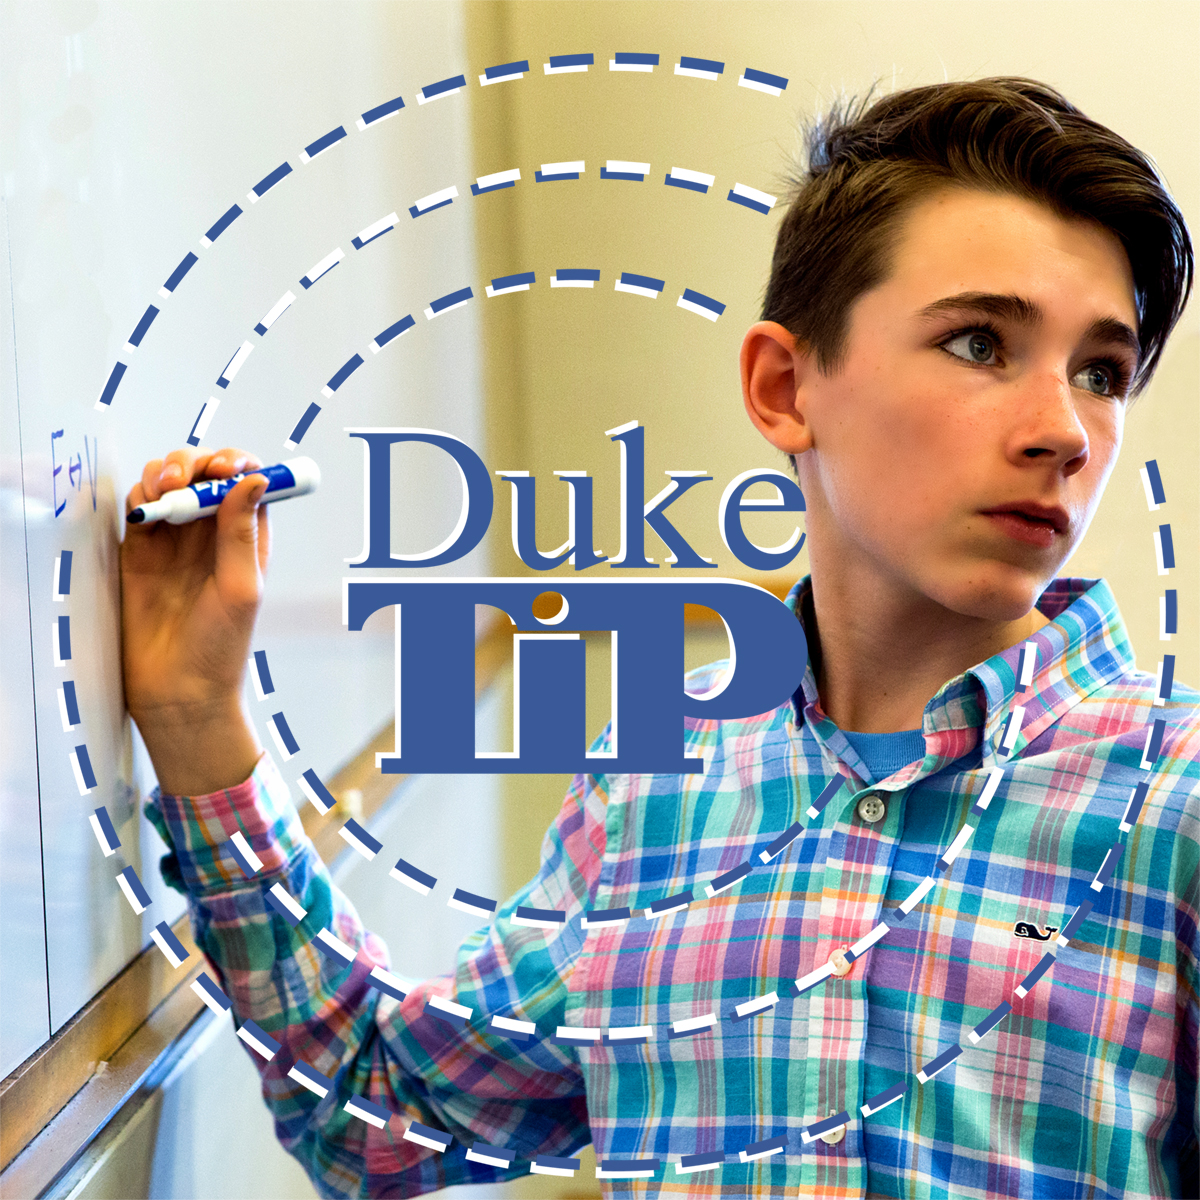 Coming soon: The Duke TIP Podcast